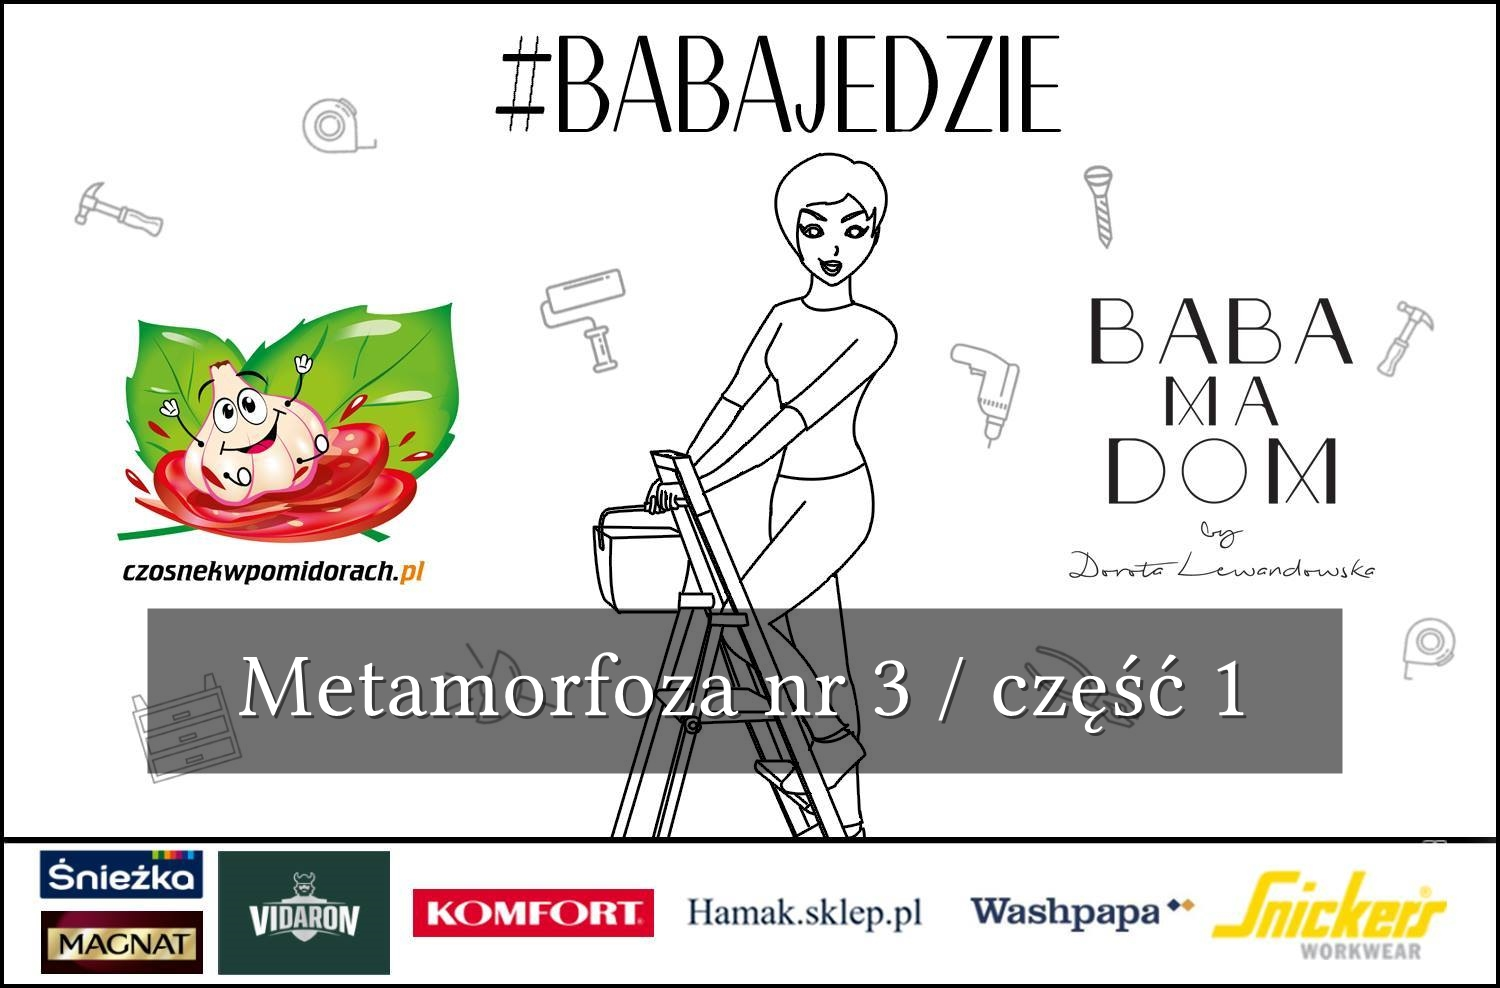 aranżacje wnętrz, babajedzie, babamadom, design, DIY, do it yourself, doityourself, featured, kampania baby, majsterkowanie, metamorfozy, pergola, taras, vidaron, zrób to sam,